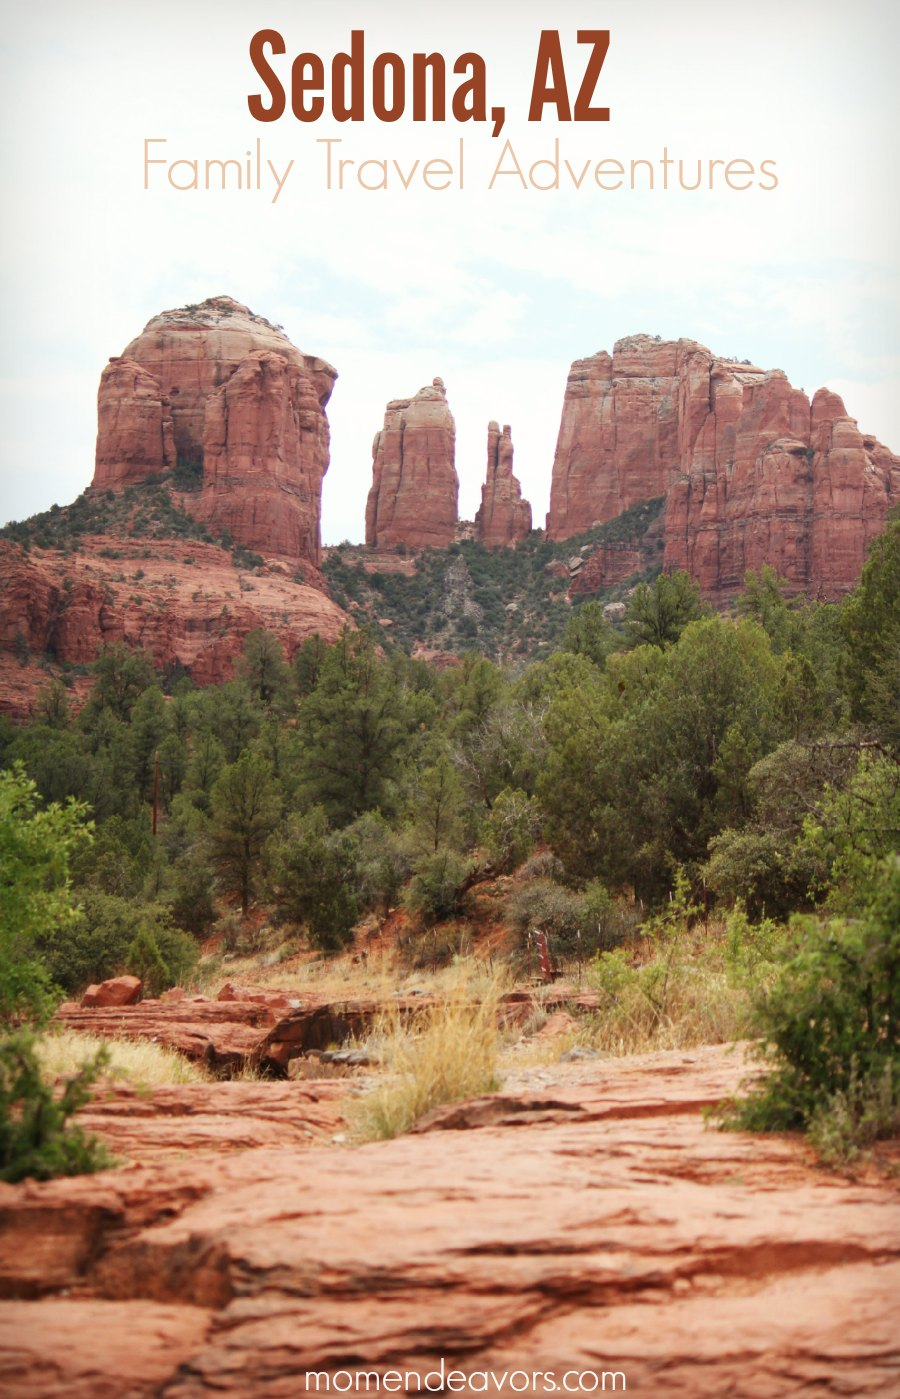 Sedona family travel